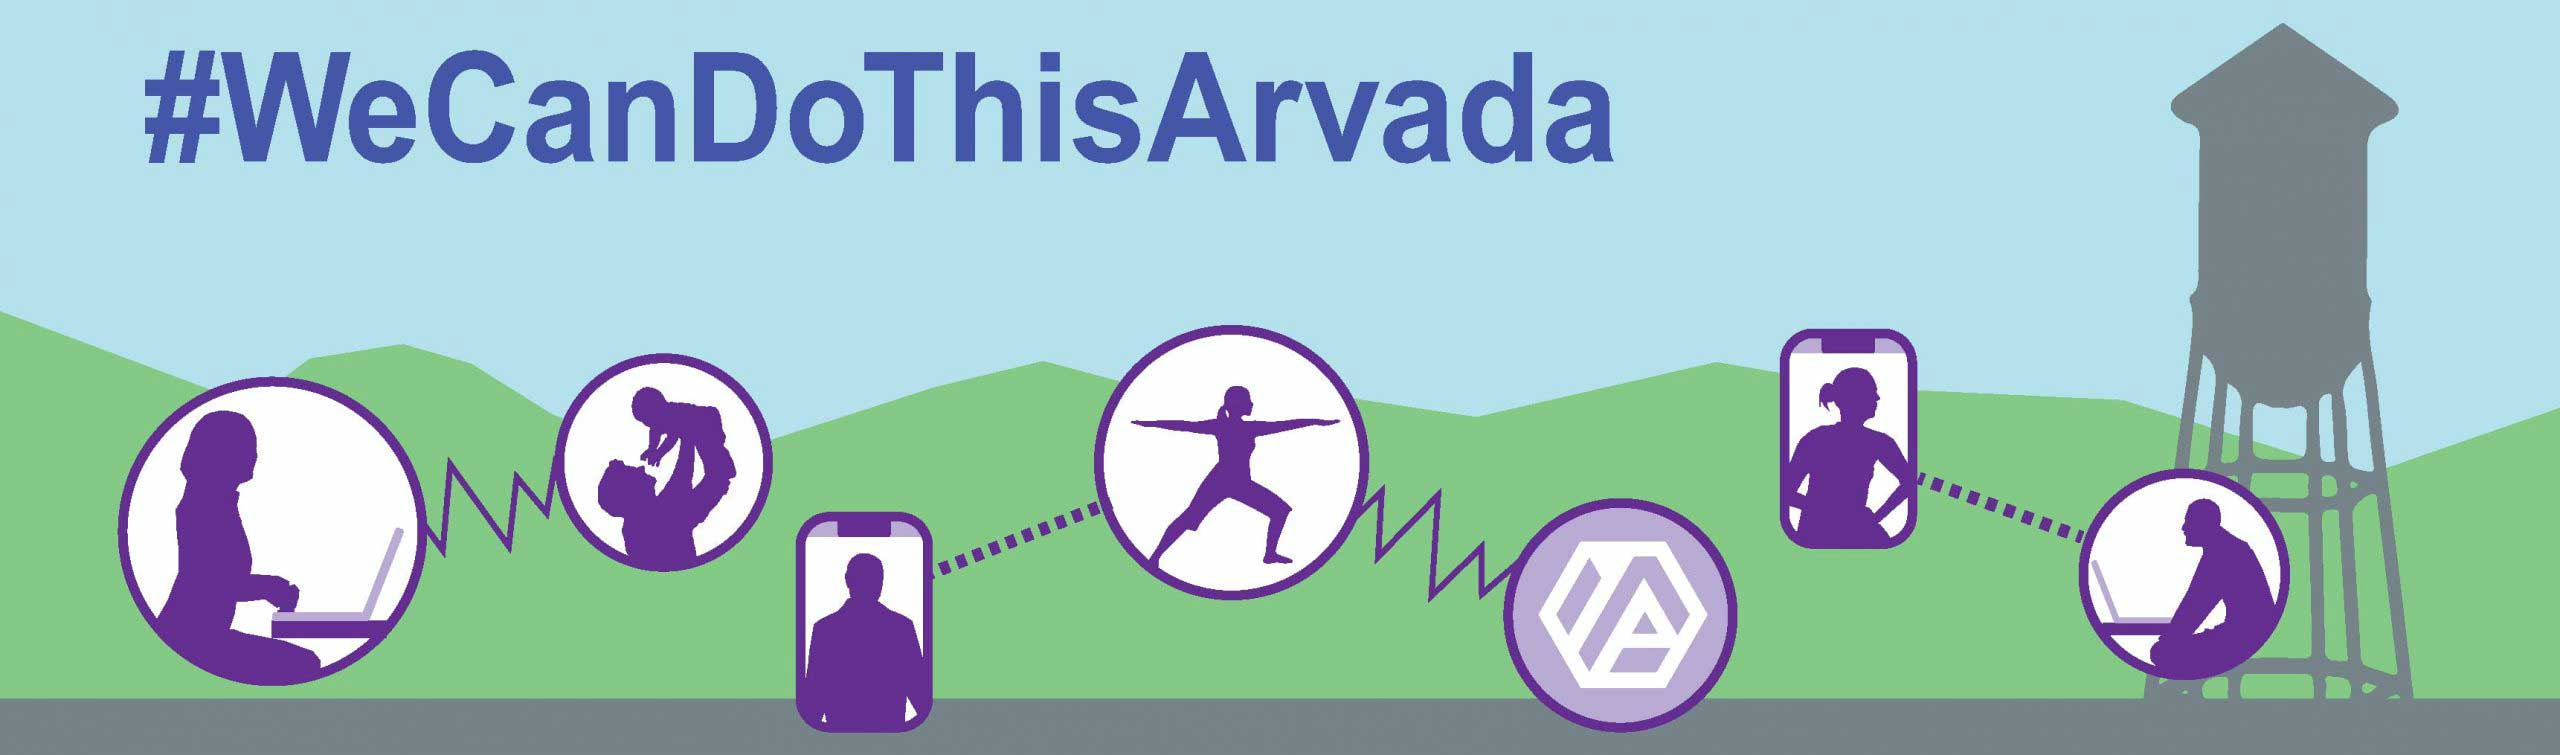 # We can do this Arvada